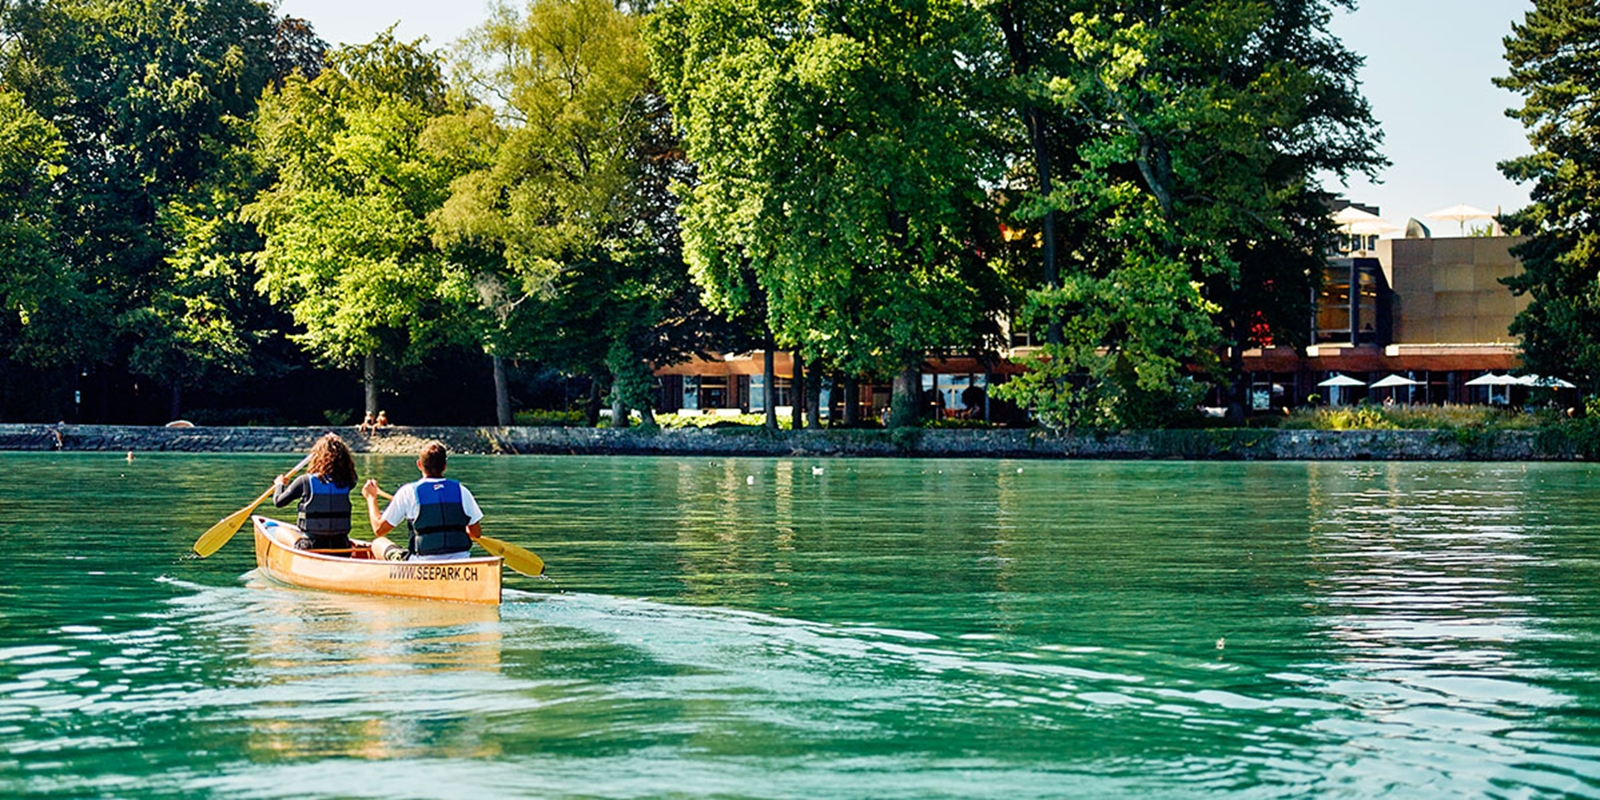 Canoeing and biking in the city of the Alps